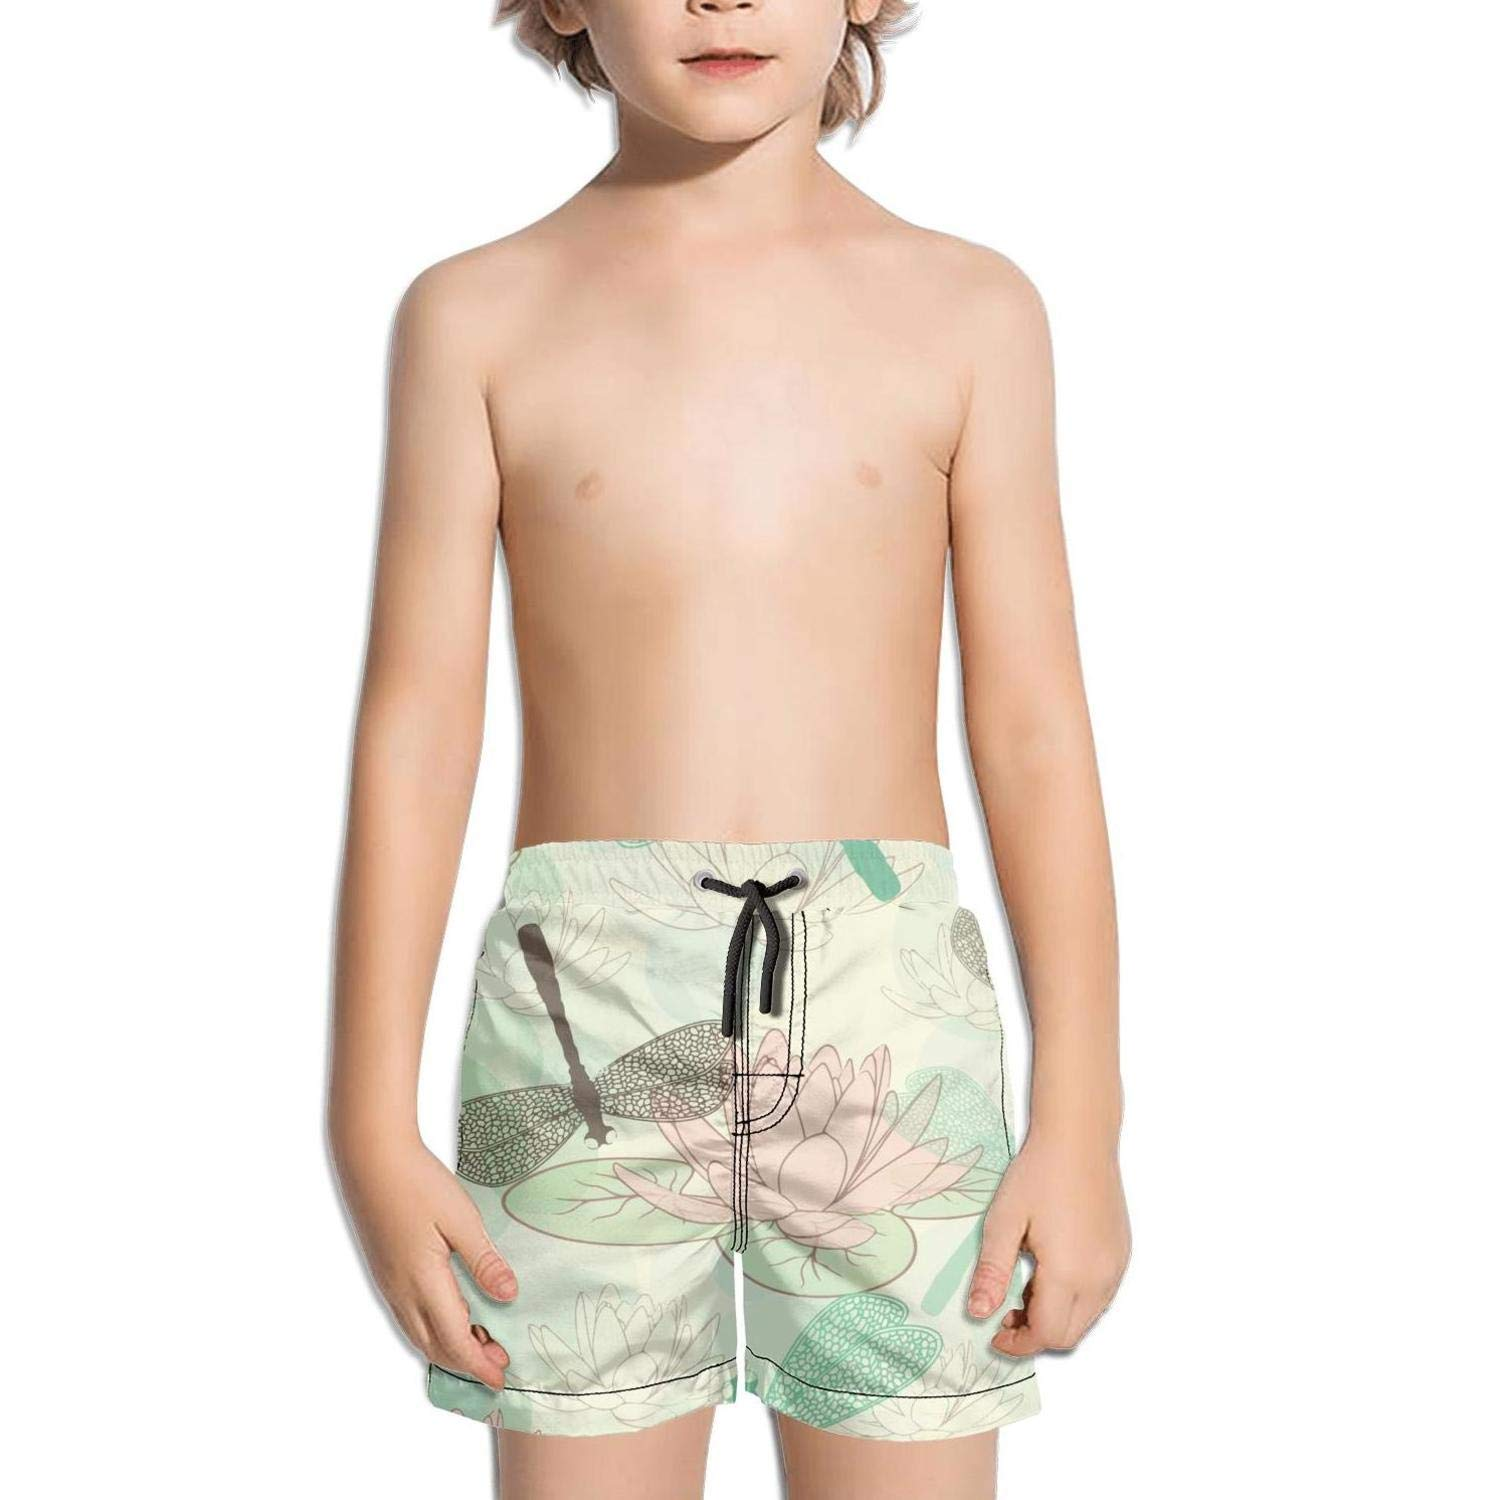 Lenard Hughes Boys Quick Dry Beach Shorts with Pockets Lotus Flower Dragonfly Swim Trunks for Summer